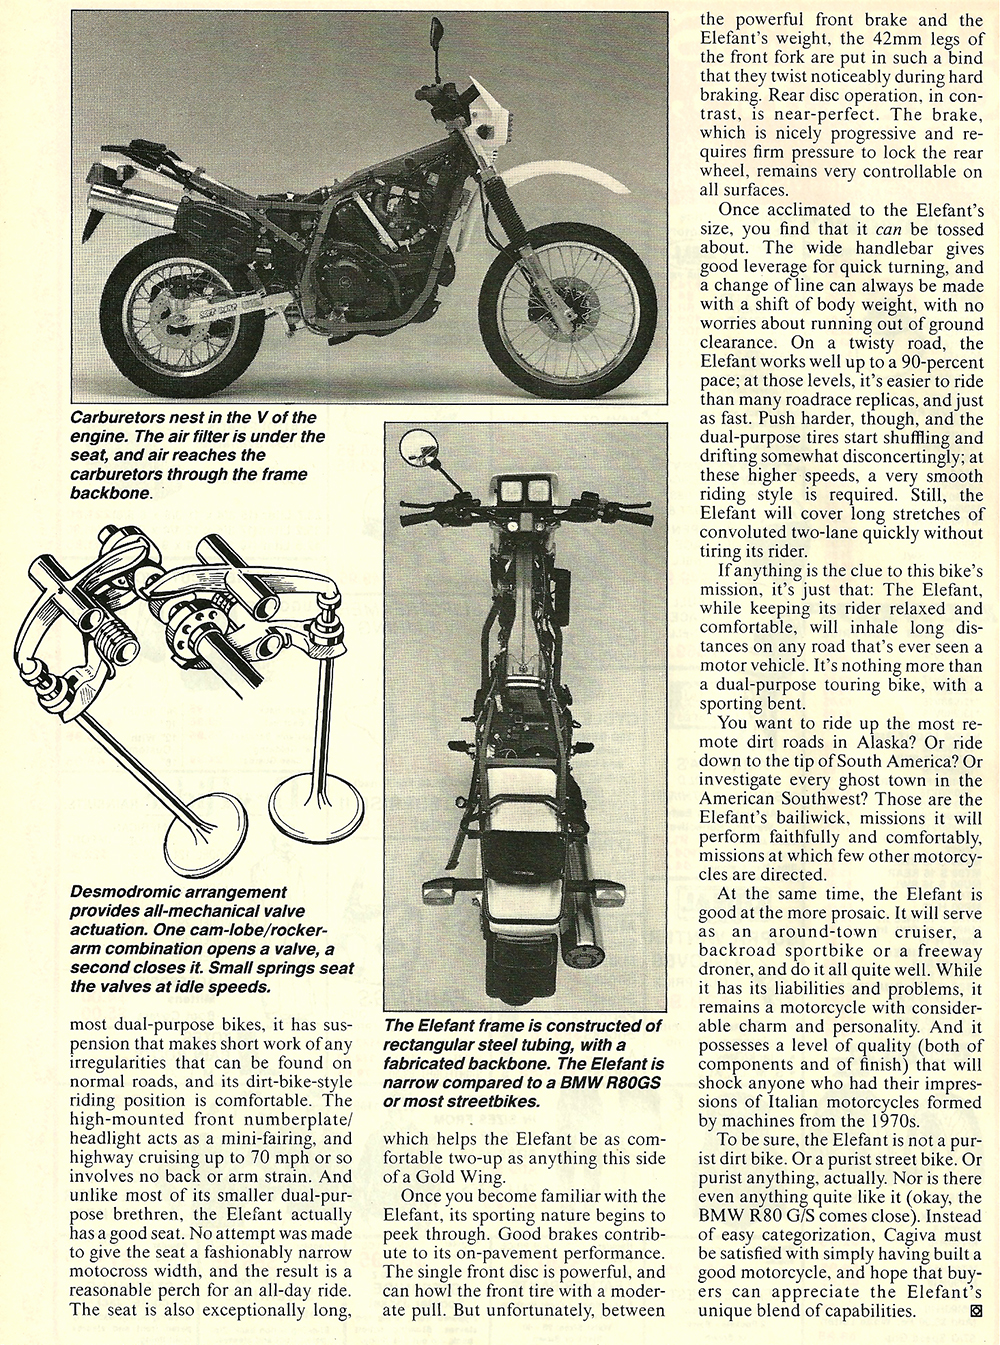 1985 Cagiva 650 Elefant road test 04.jpg